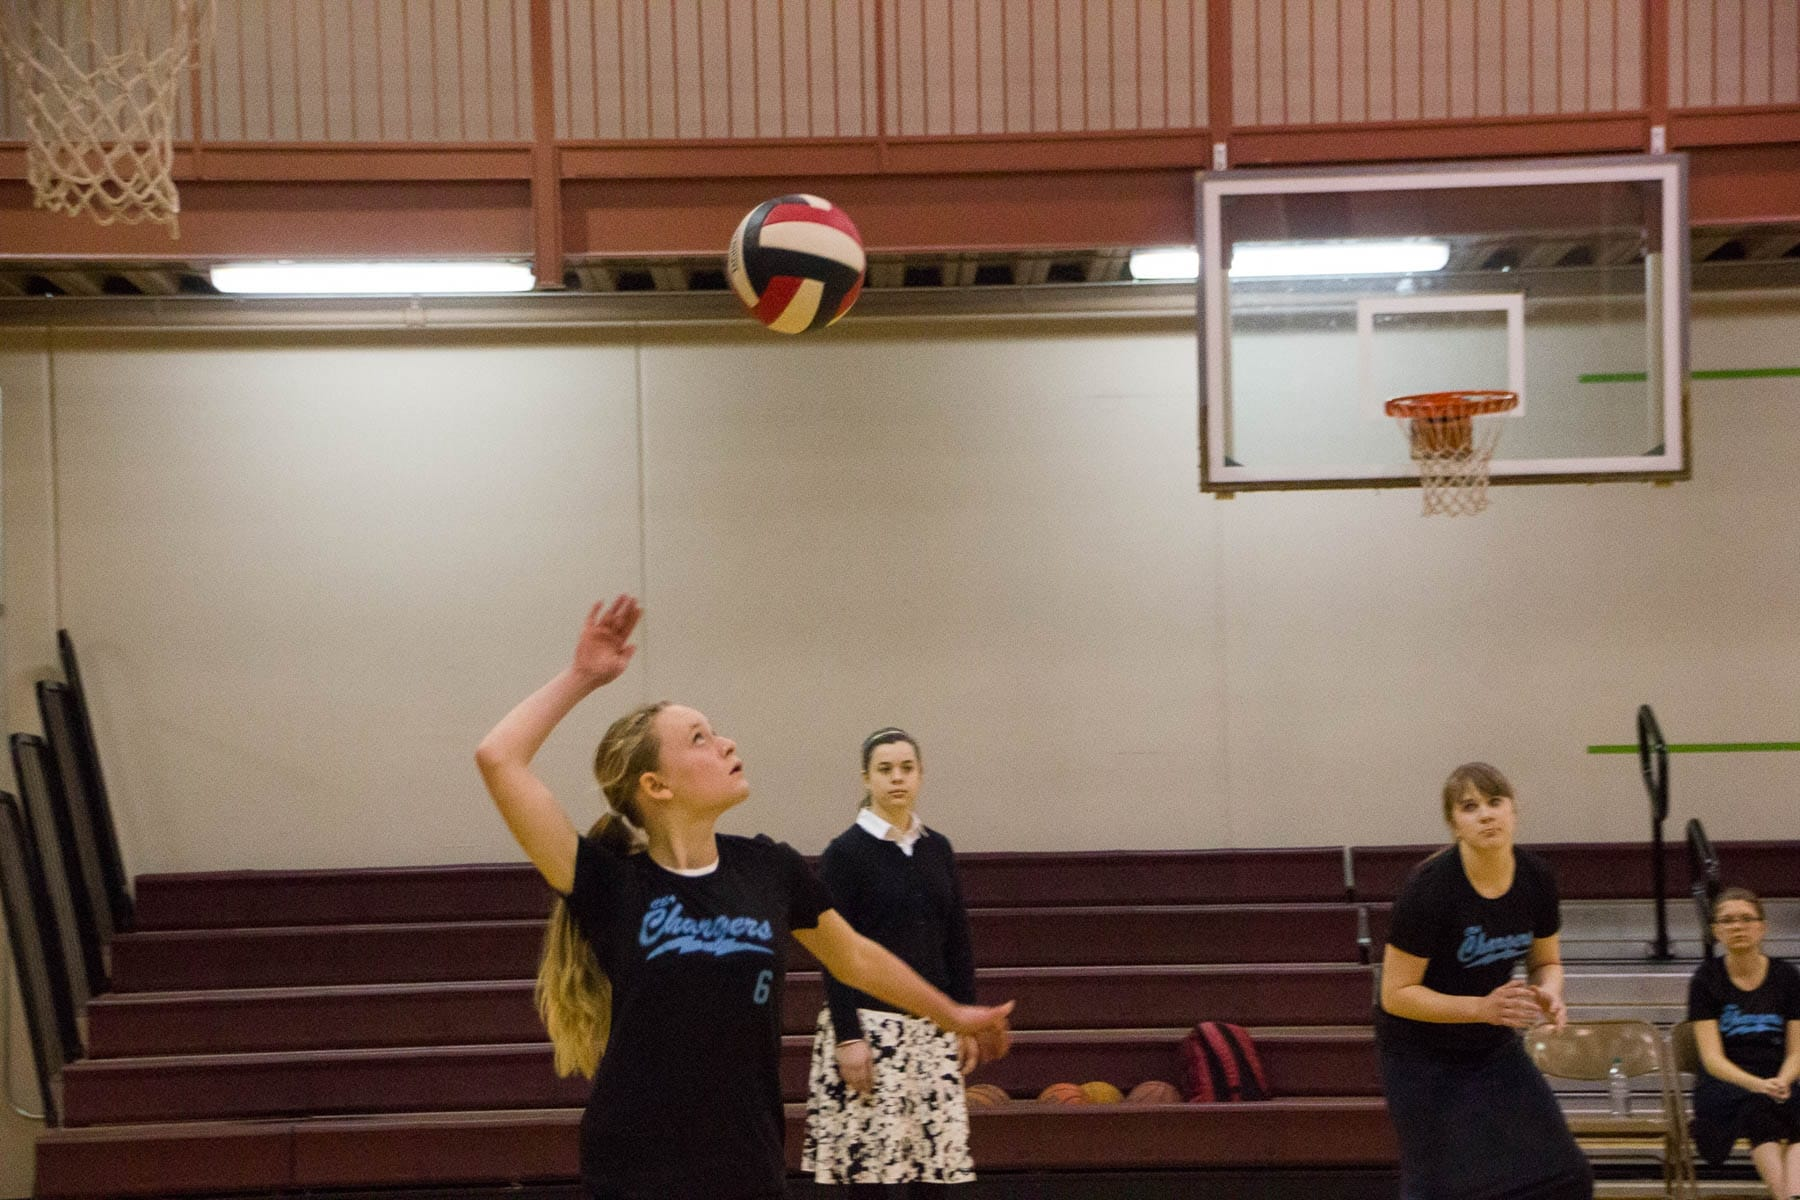 Fairhaven Baptist Academy Volleyball Basketball Tournament 2016 (15 of 40)